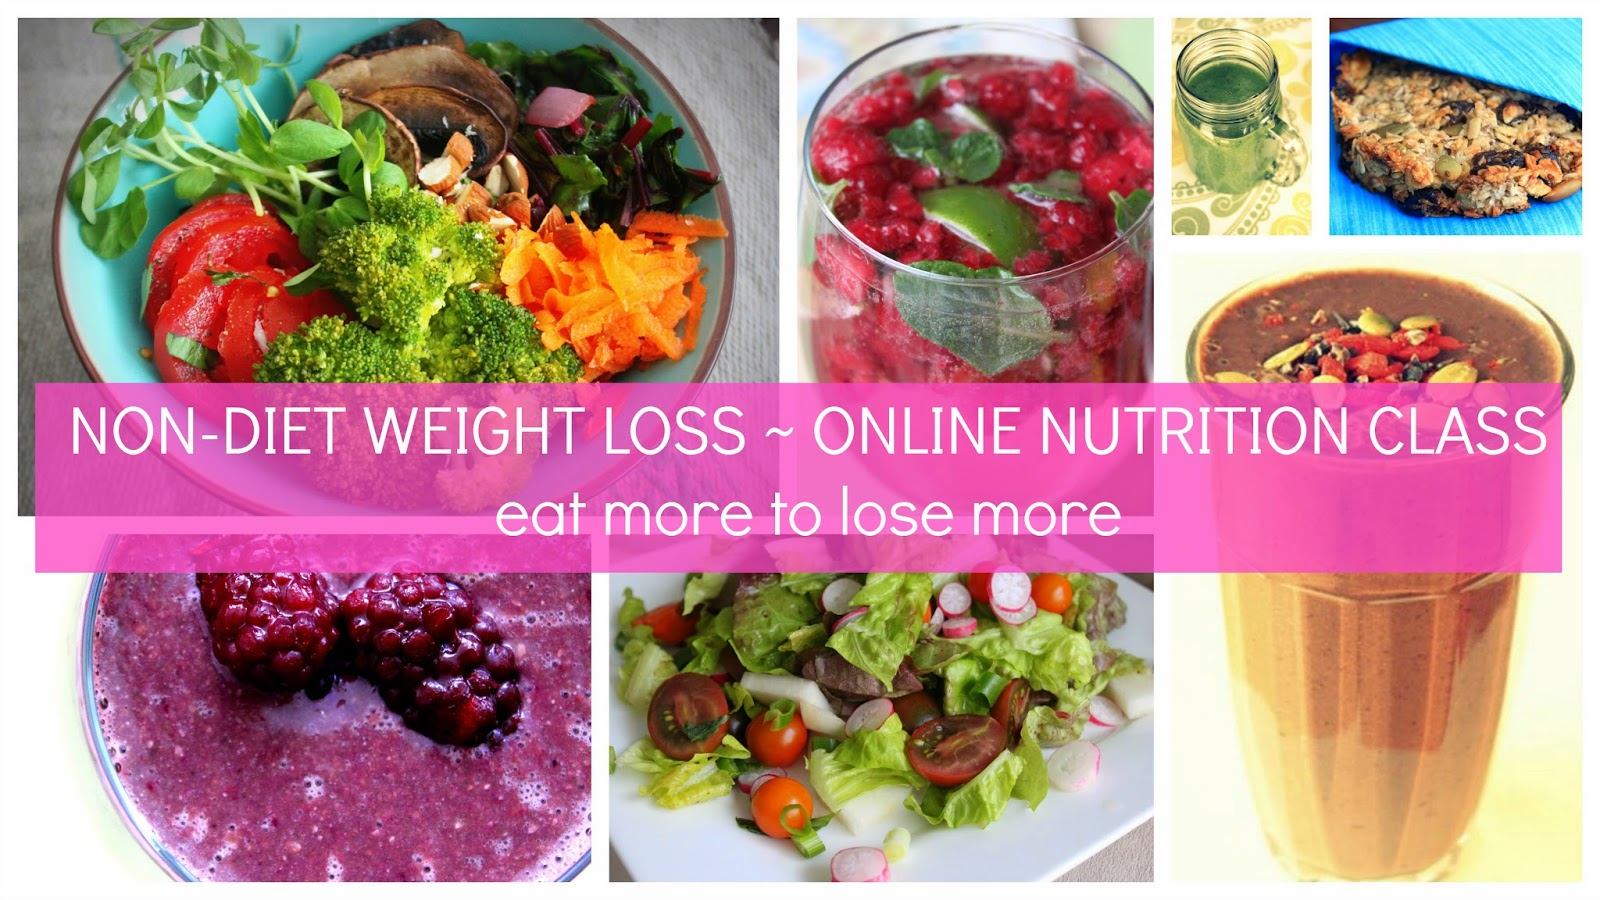 Online Non-Diet Weight Loss program